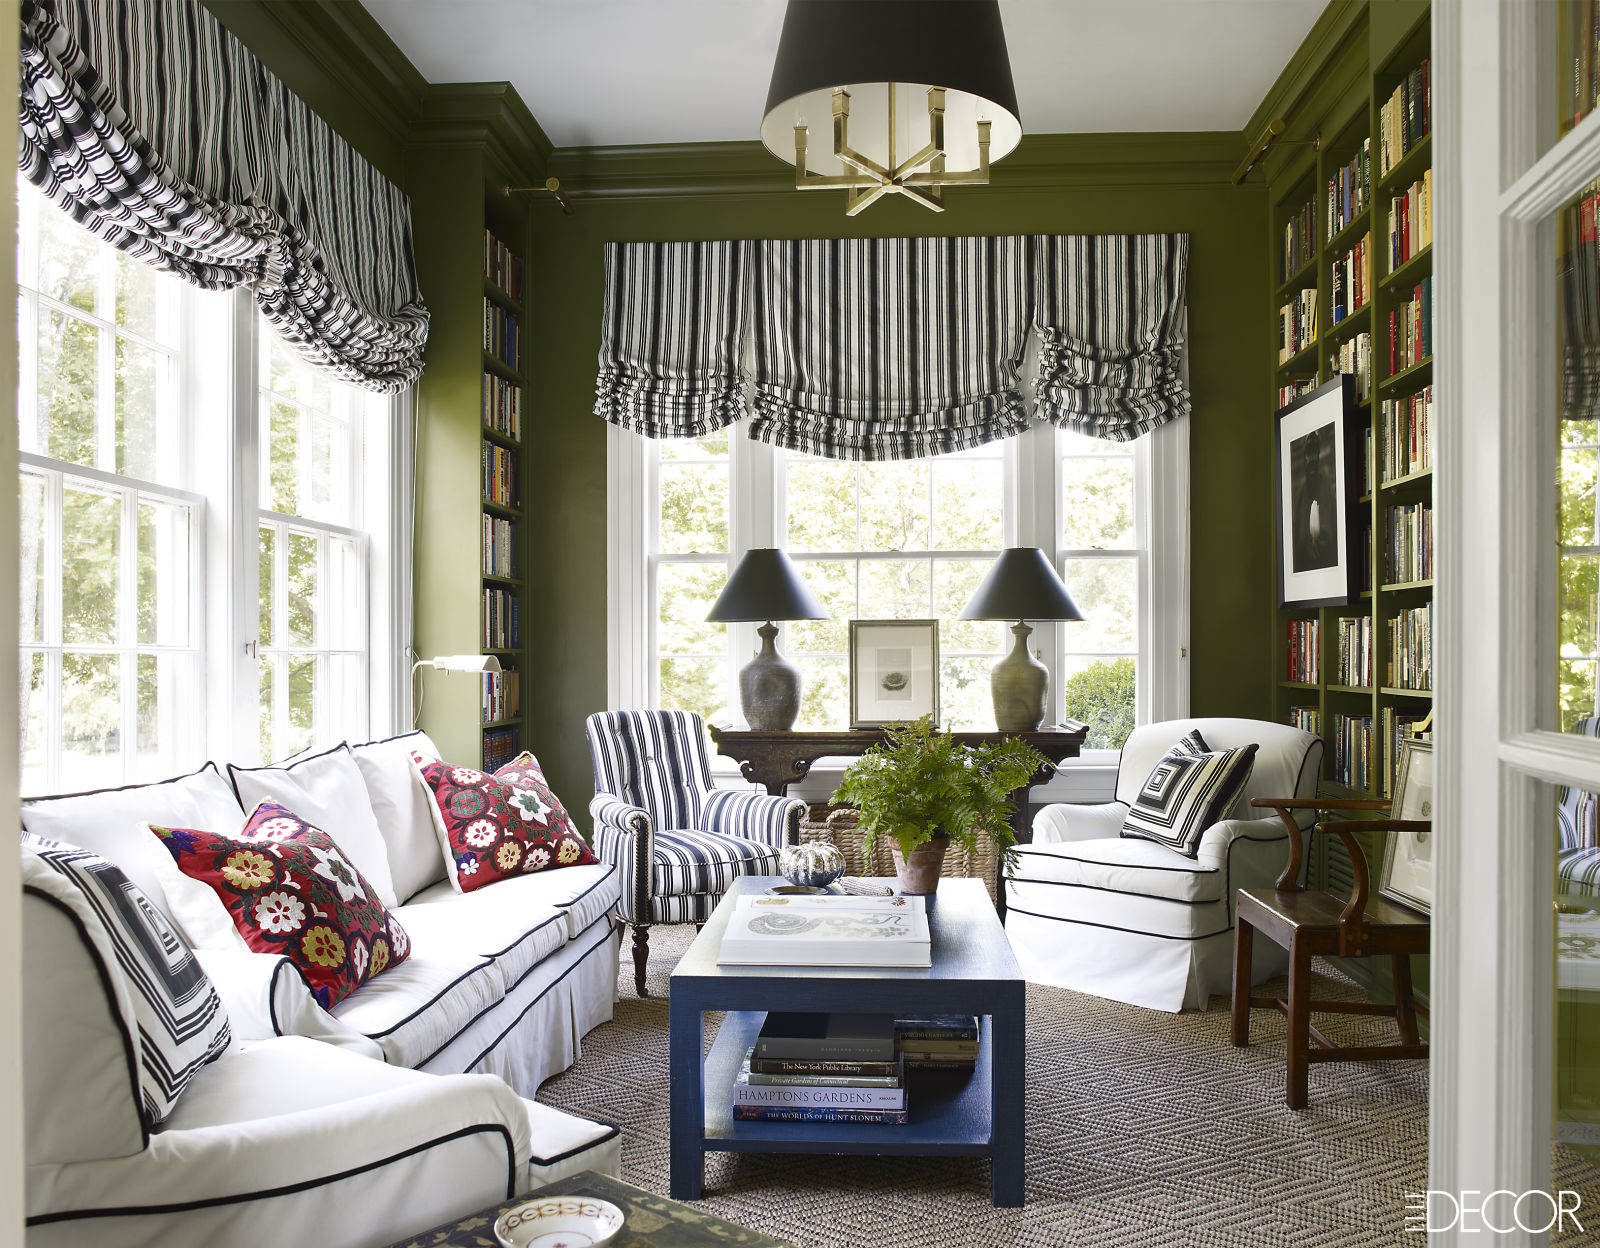 20 Olive Green Paint Color amp Decor Ideas